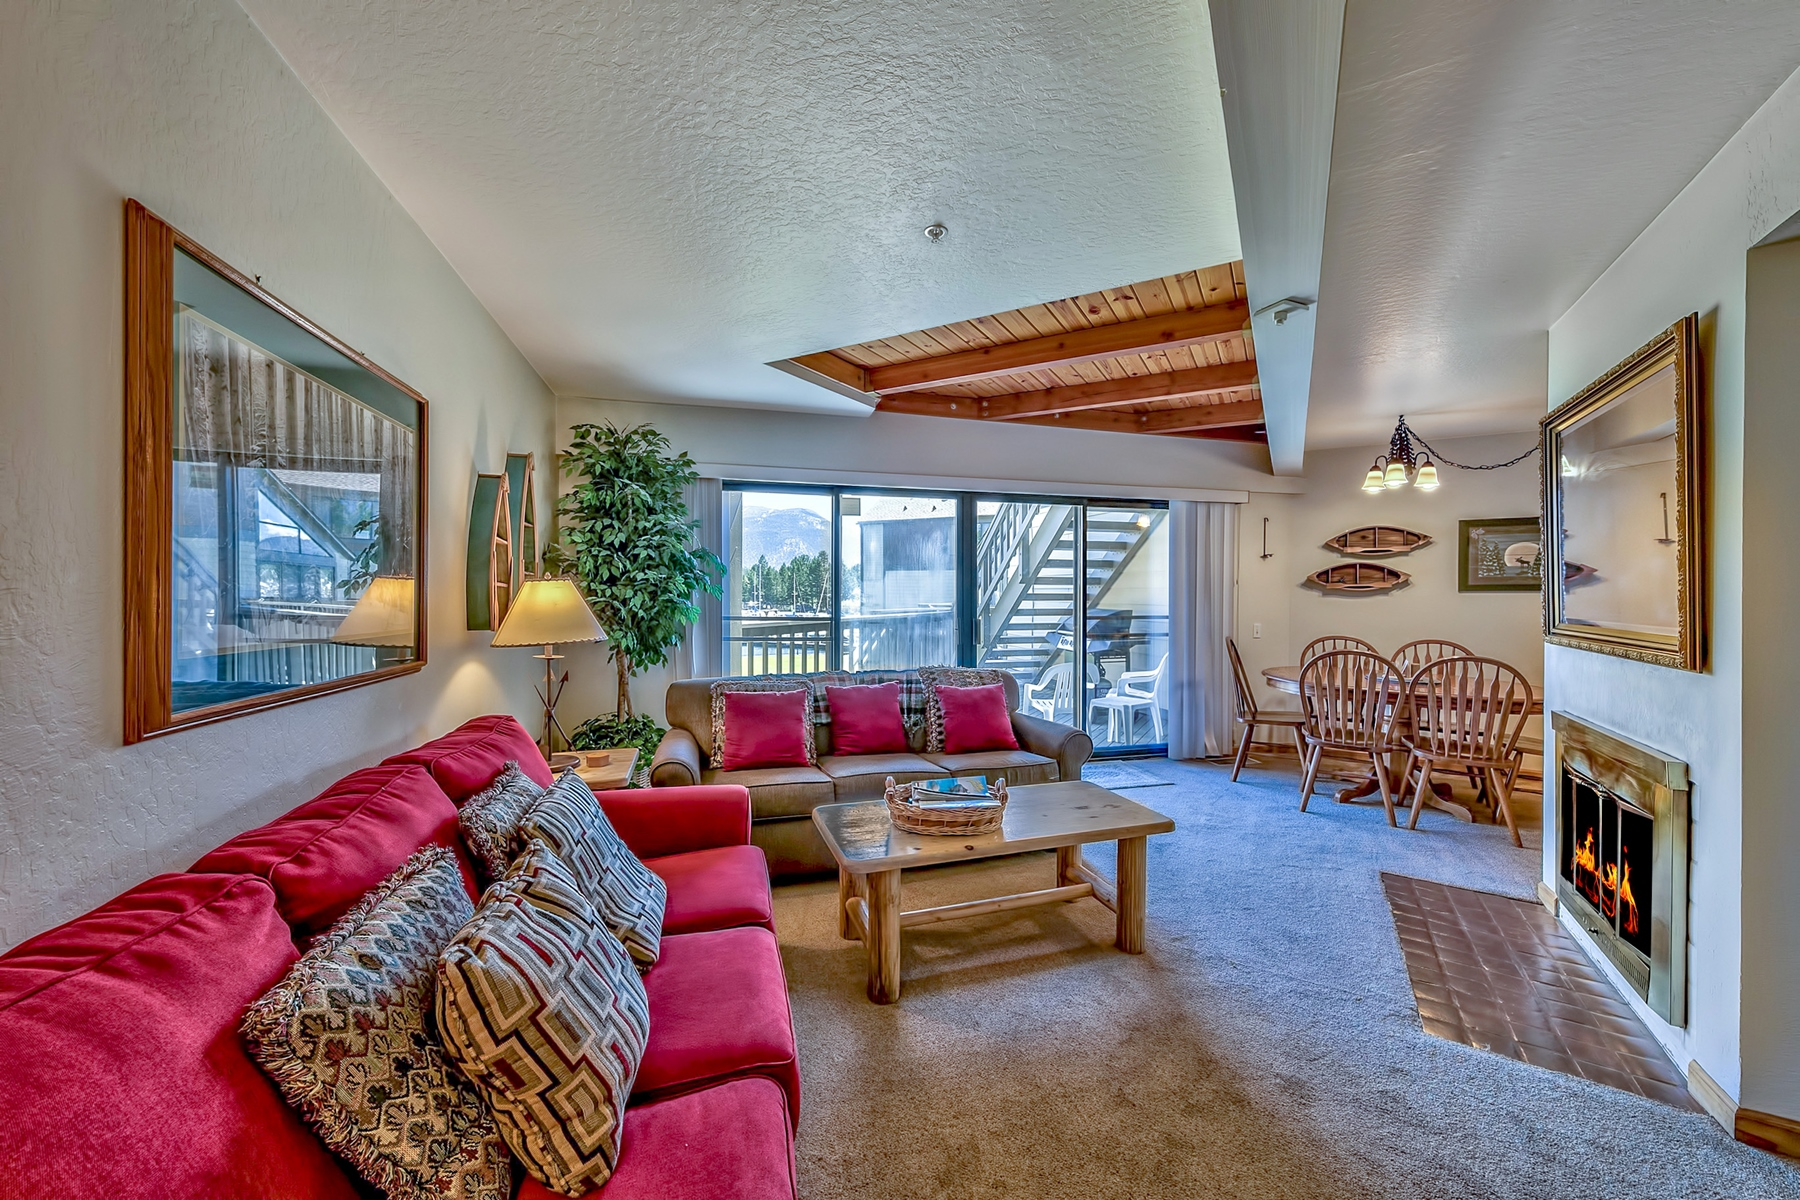 Additional photo for property listing at 555 Tahoe Keys Blvd, #7, South Lake Tahoe, CA, 96150 555 Tahoe Keys Boulevard #7 South Lake Tahoe, California 96150 United States